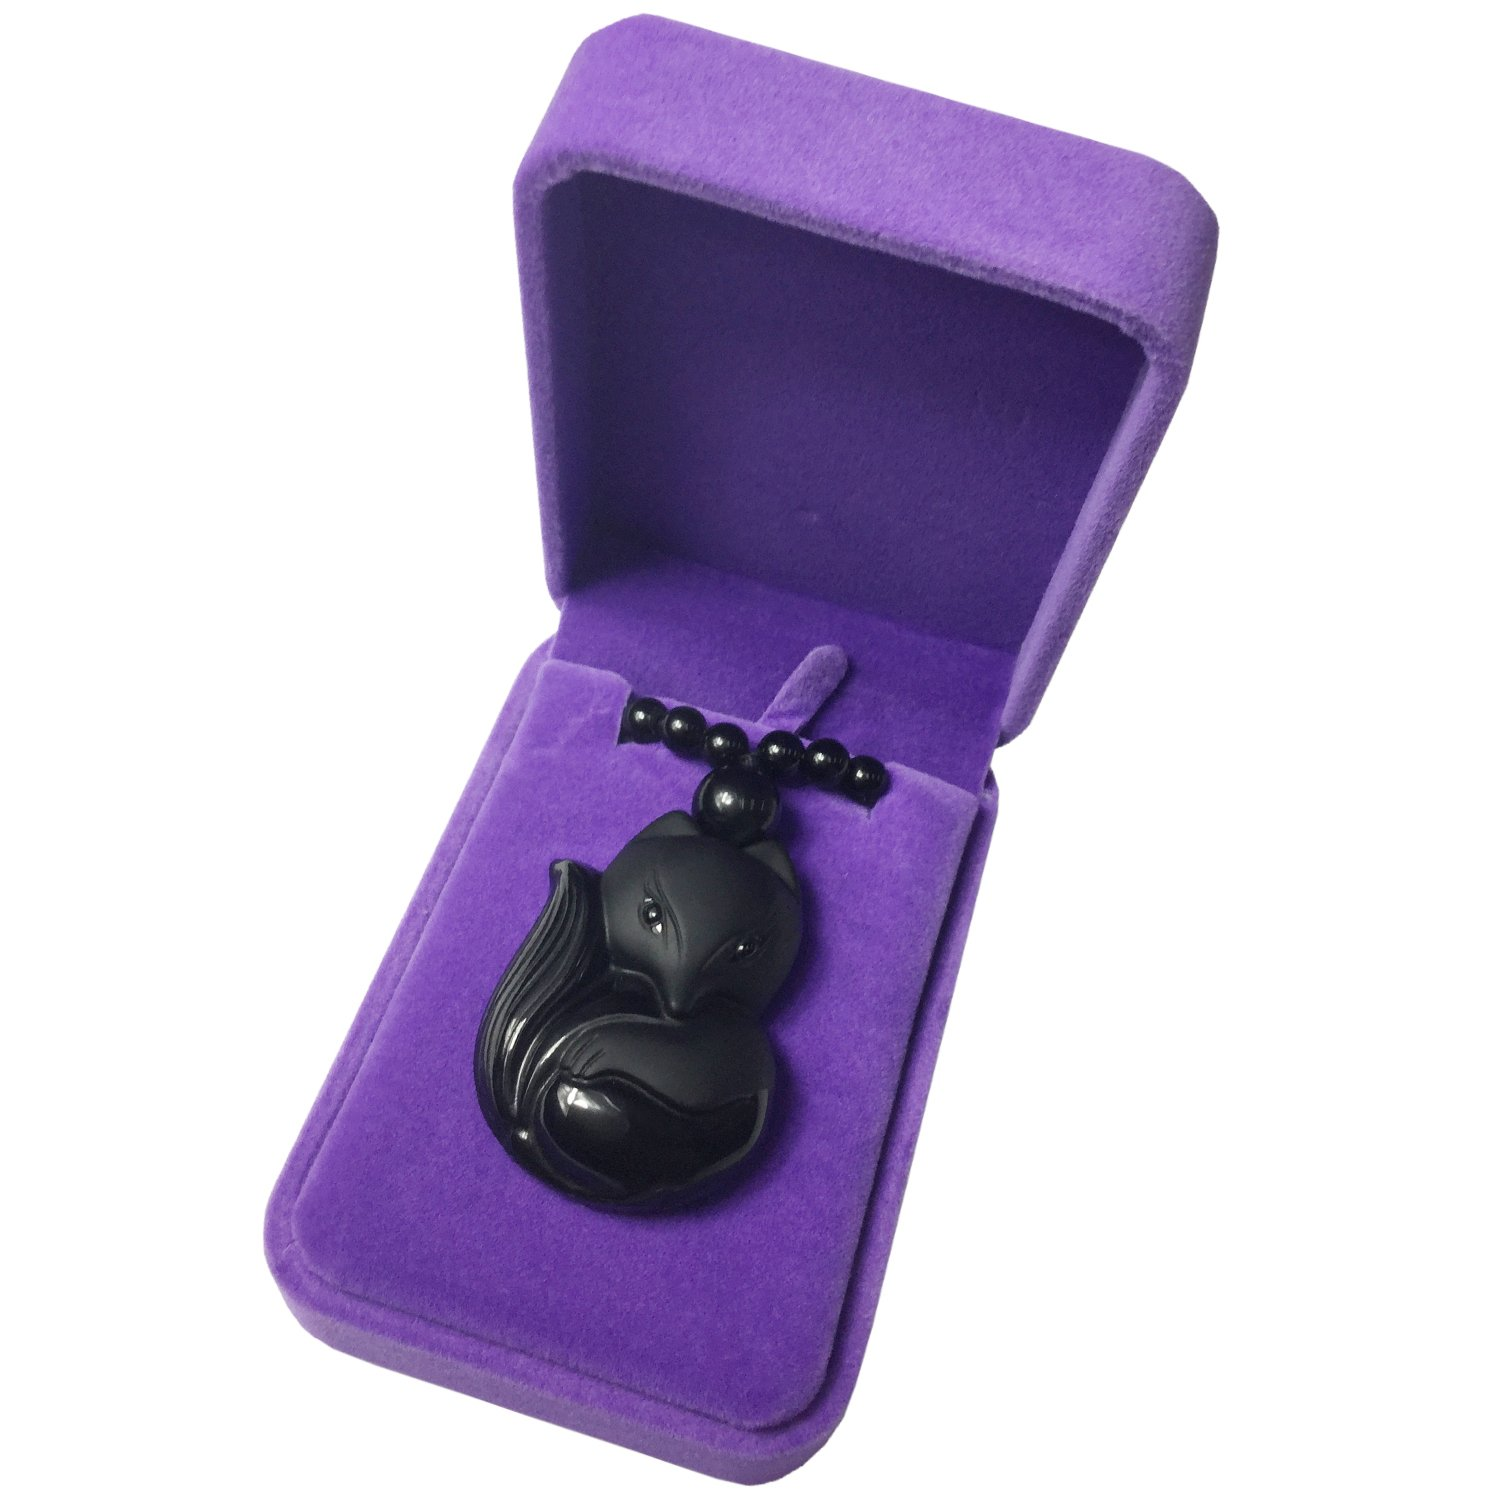 Black Obsidian Jewelry Pendant Amulet Gemstone Choker Smartphone Blackfox A2 Ten Android Lucky Fox Necklace For Women